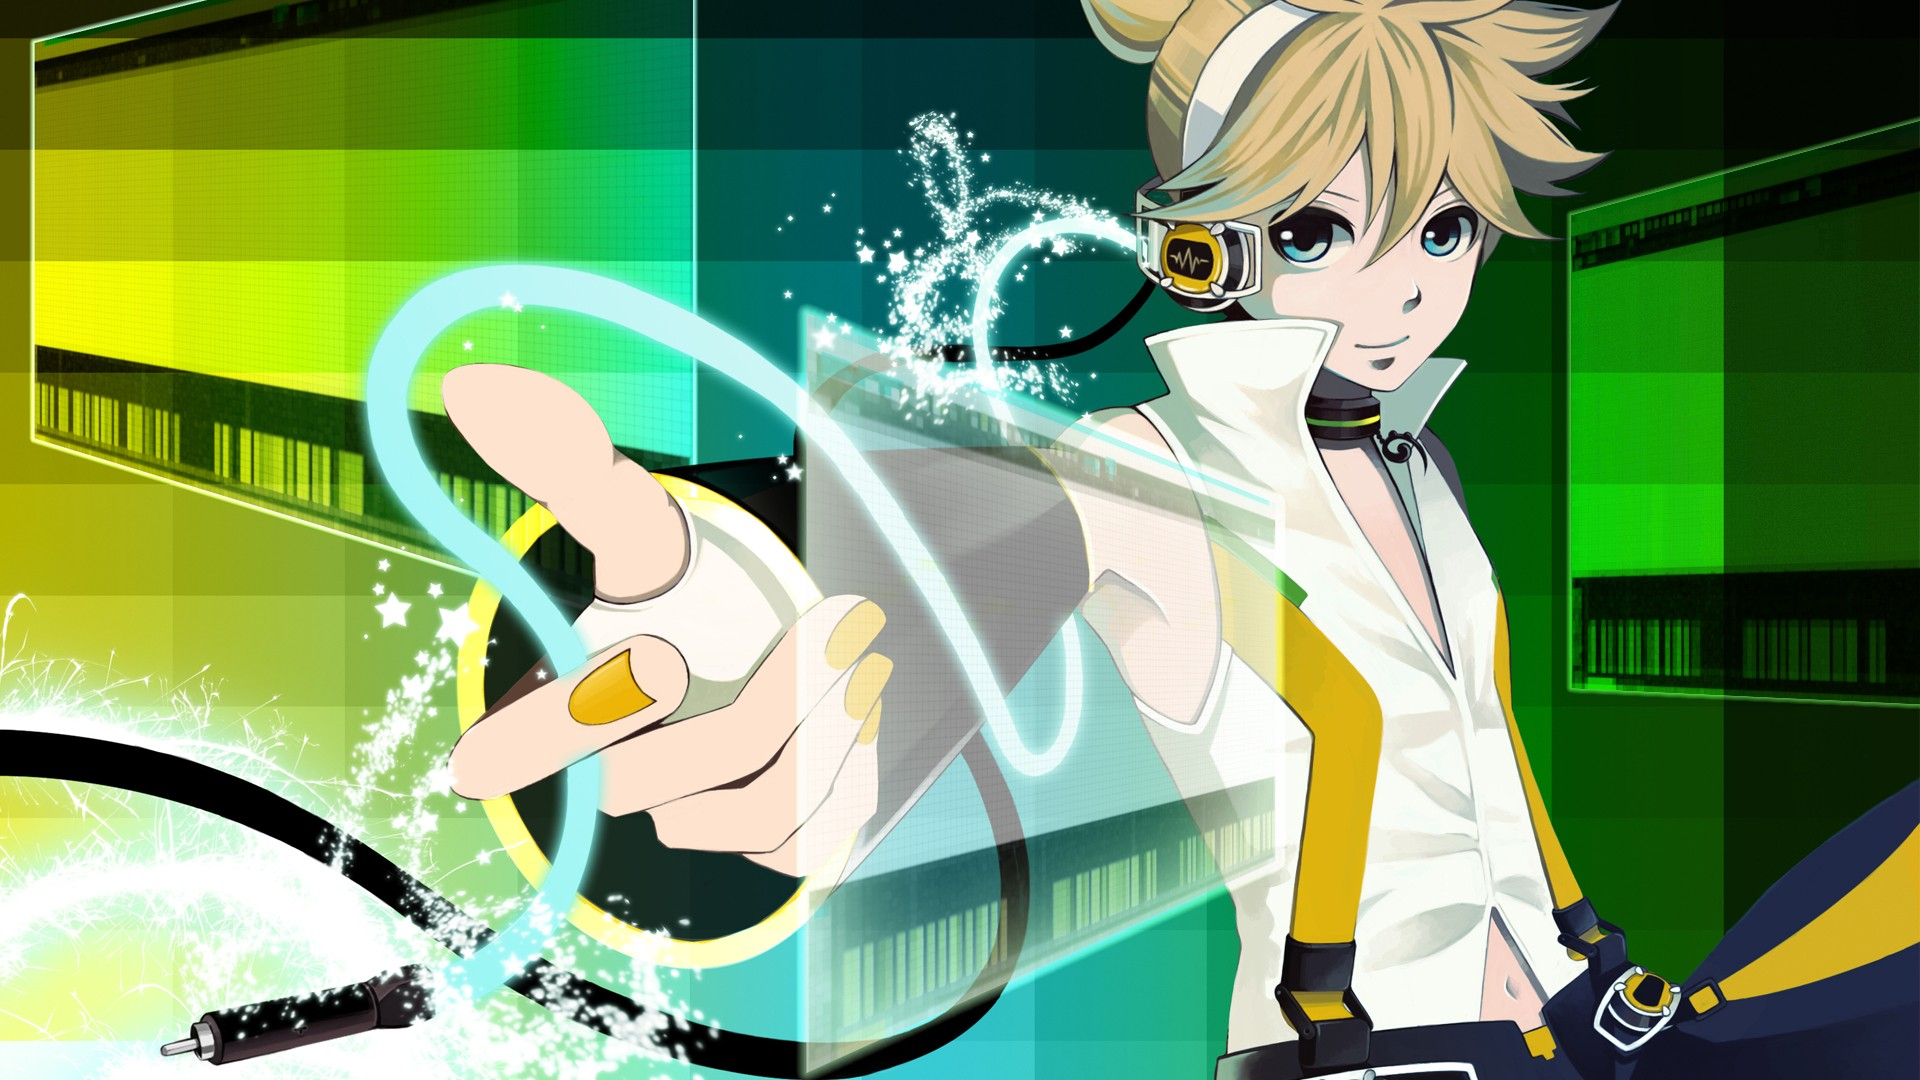 Vocaloid Kagamine Len Wallpaper HD 4K for PC